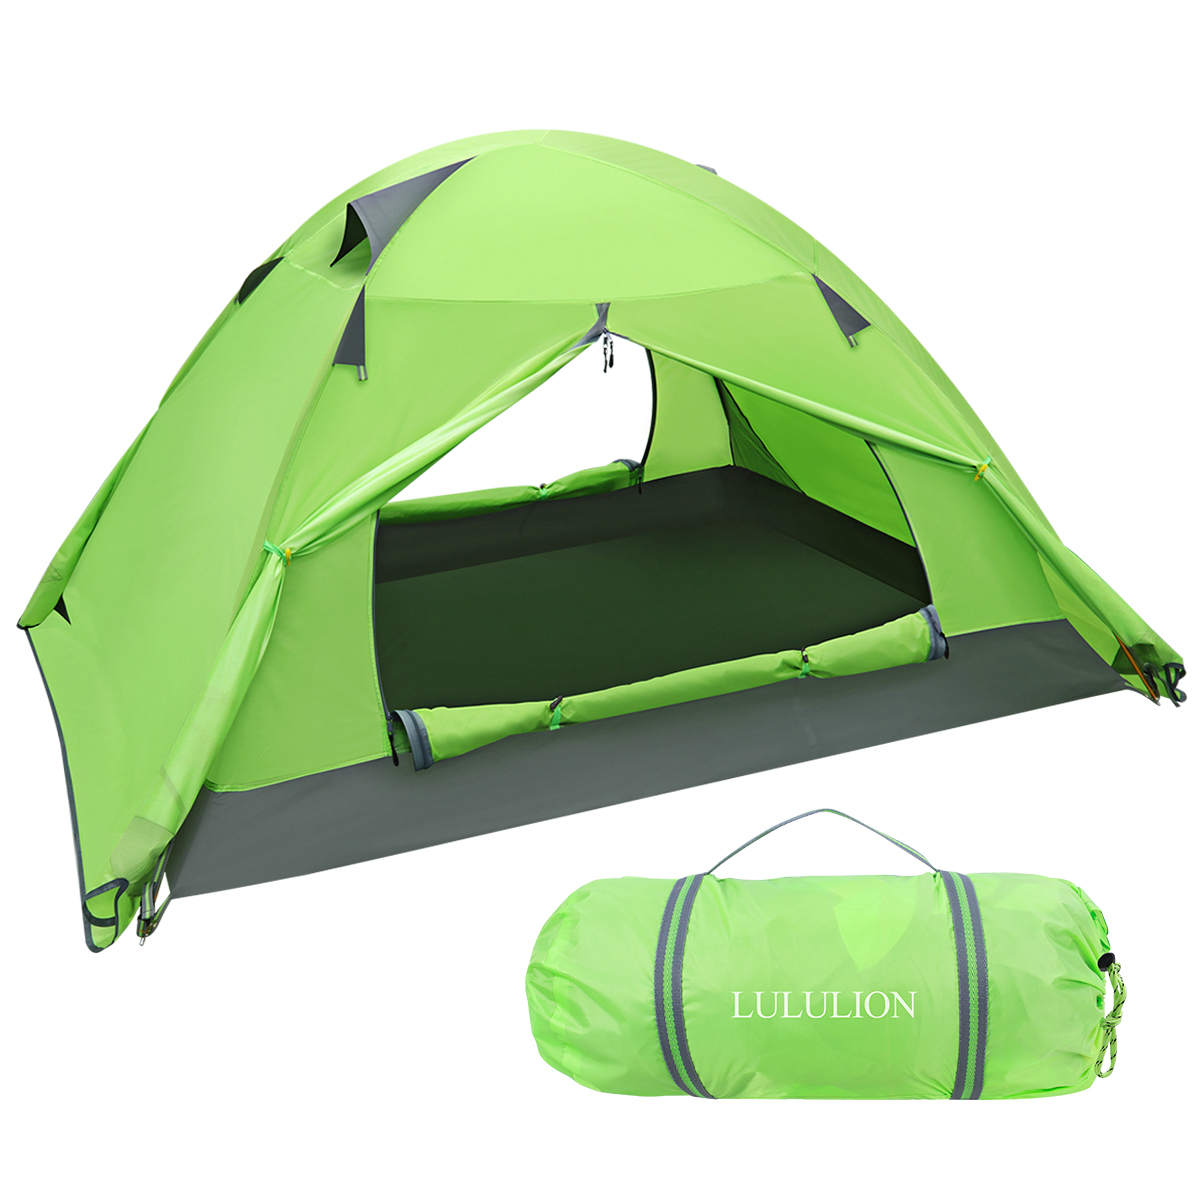 Waterproof PU Coating Backpacking Tent Two Doors Double Layer Anti UV with Aluminum Rods for Outdoor Camping Hunting